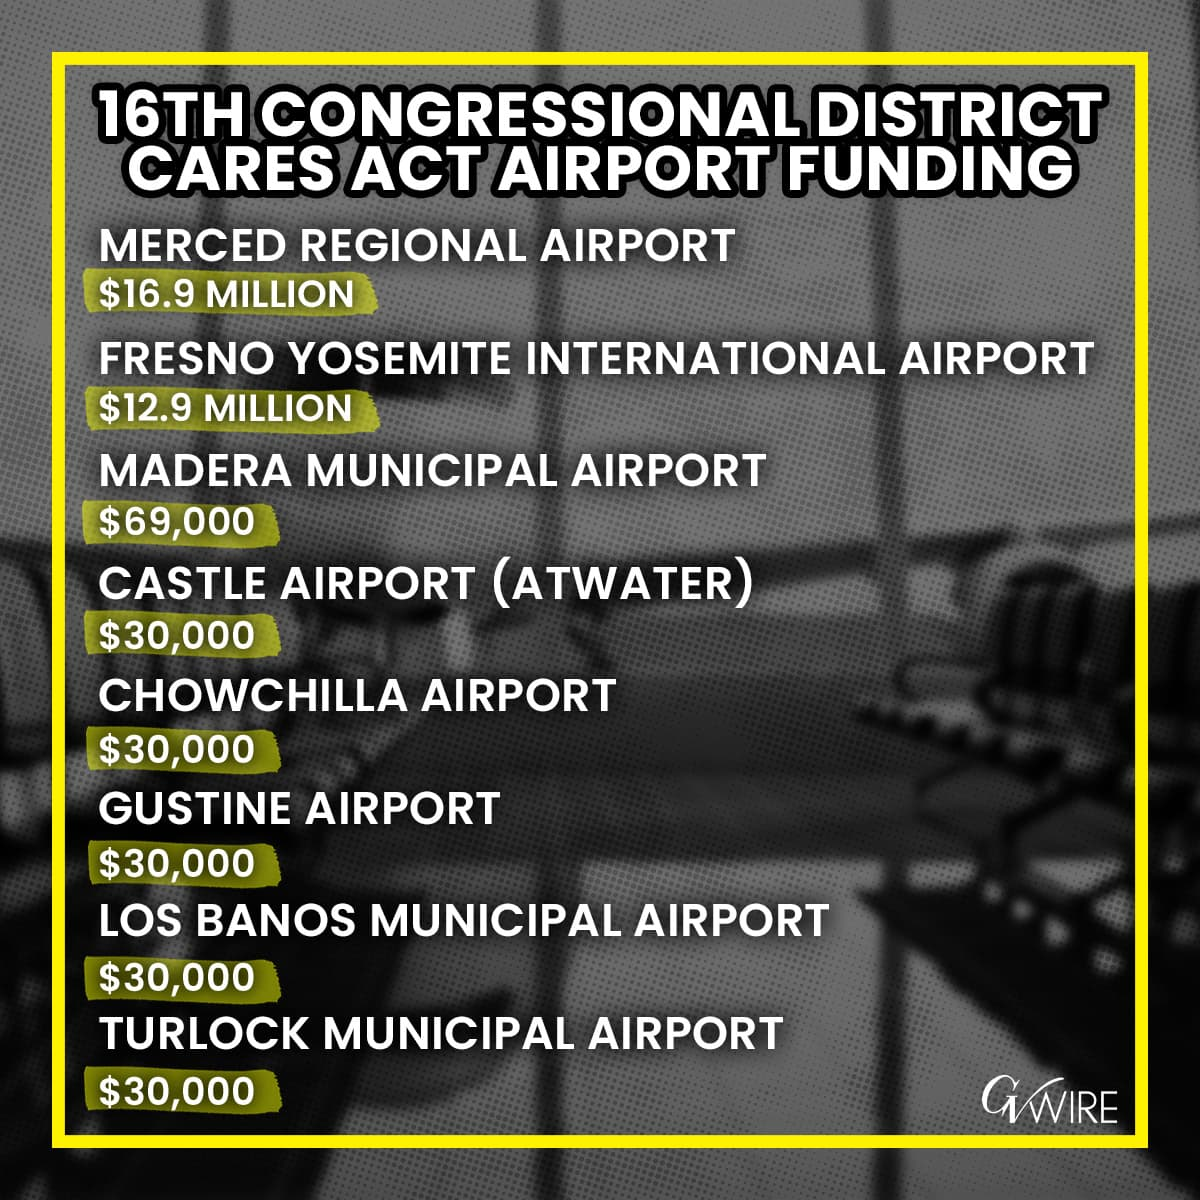 graphic of CARES Act airport funding in California's 16th Congressional District